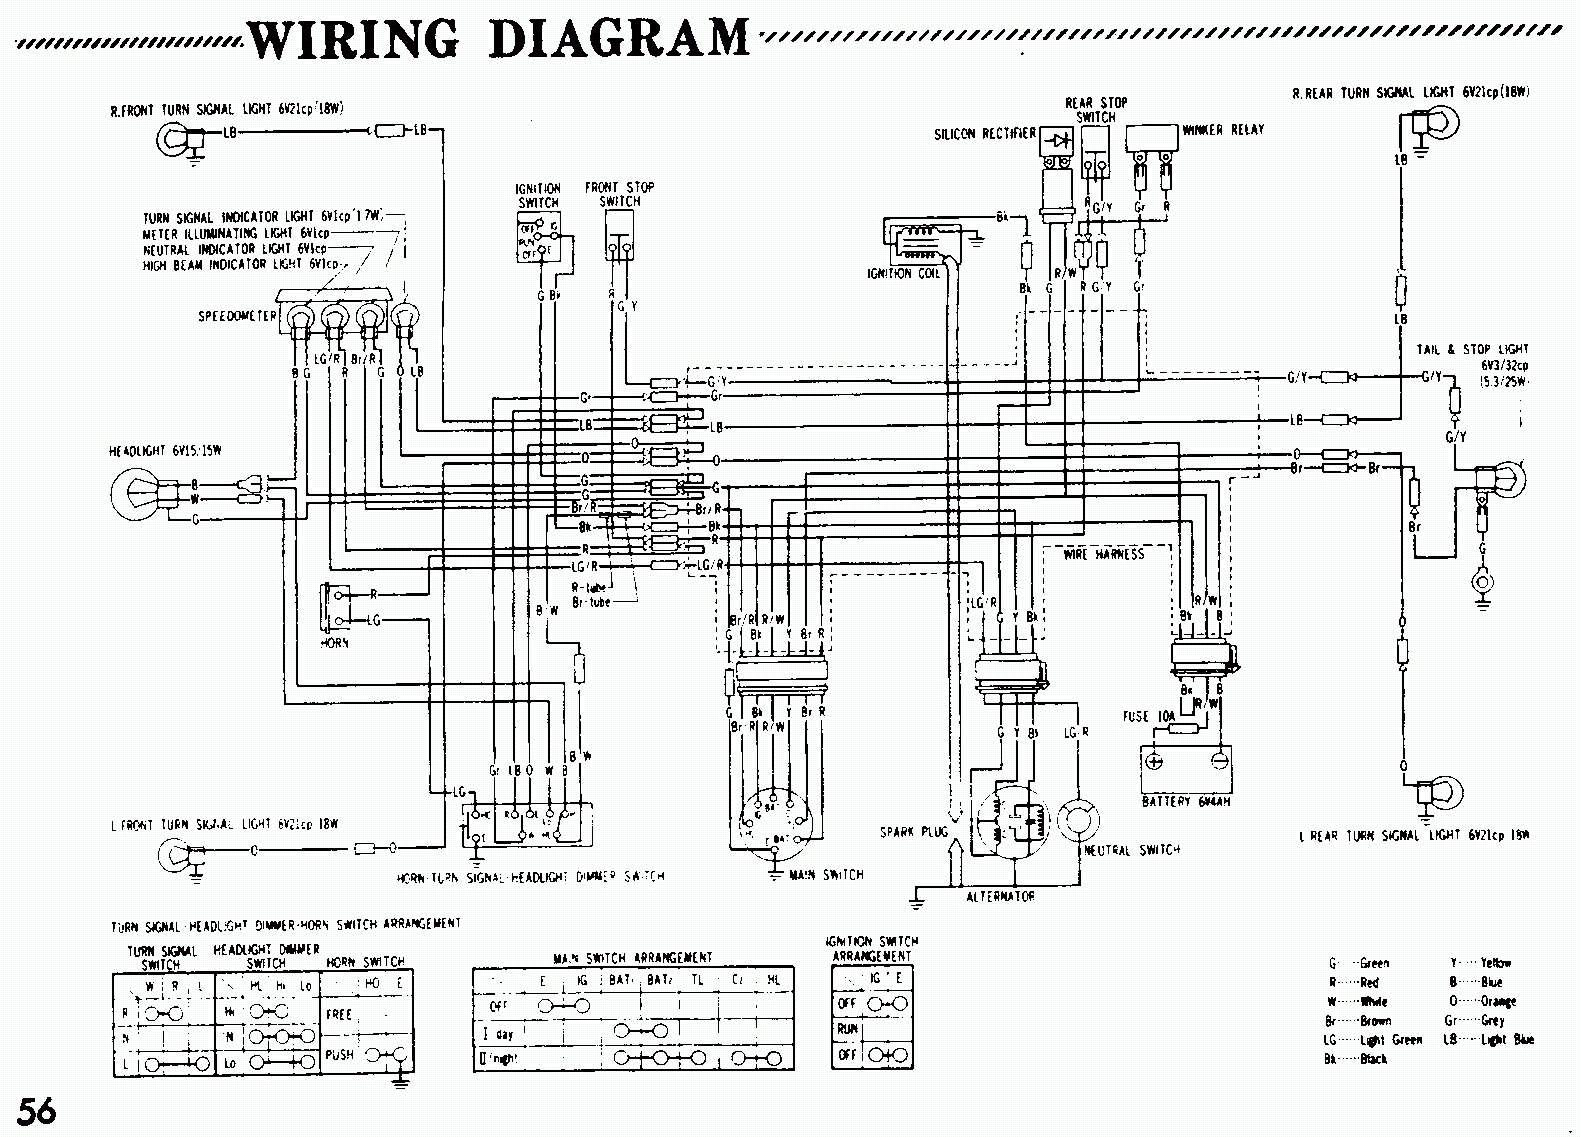 Lifan 125cc Wiring Diagram as well Kazuma Meerkat 50cc Atv Wiring Diagram further Manuals further Yfm400fwn Wiring Diagrams furthermore Honda Atv 125cc Wiring Diagram. on honda 4 wire cdi wiring diagram